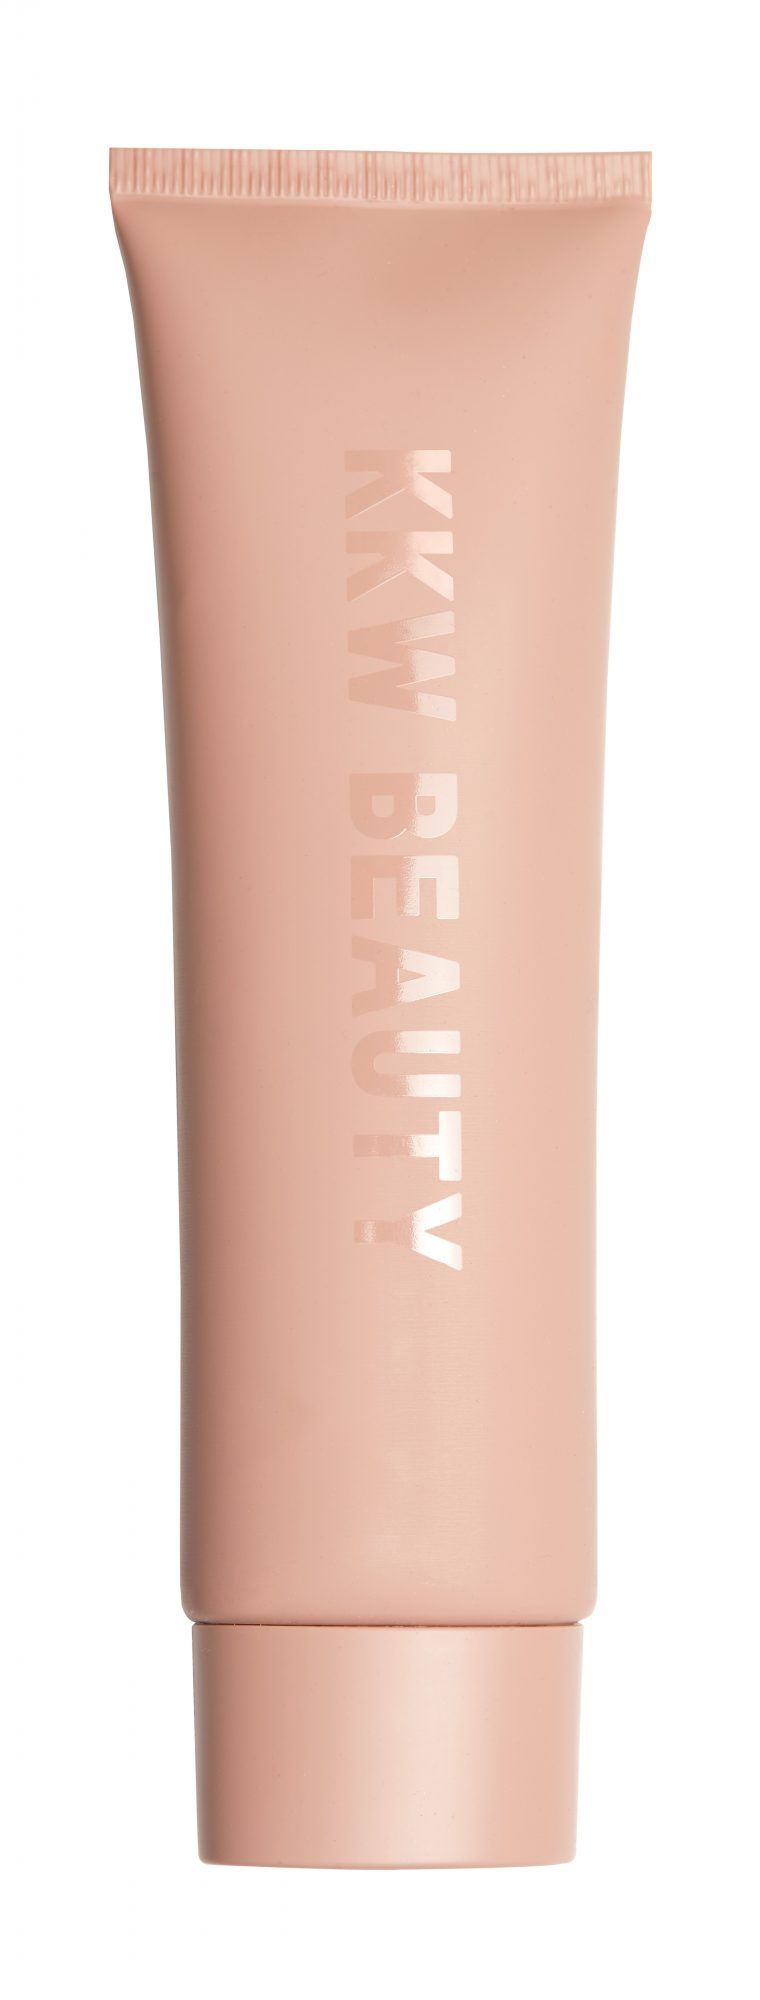 KKW-Body-Foundation-Bottle